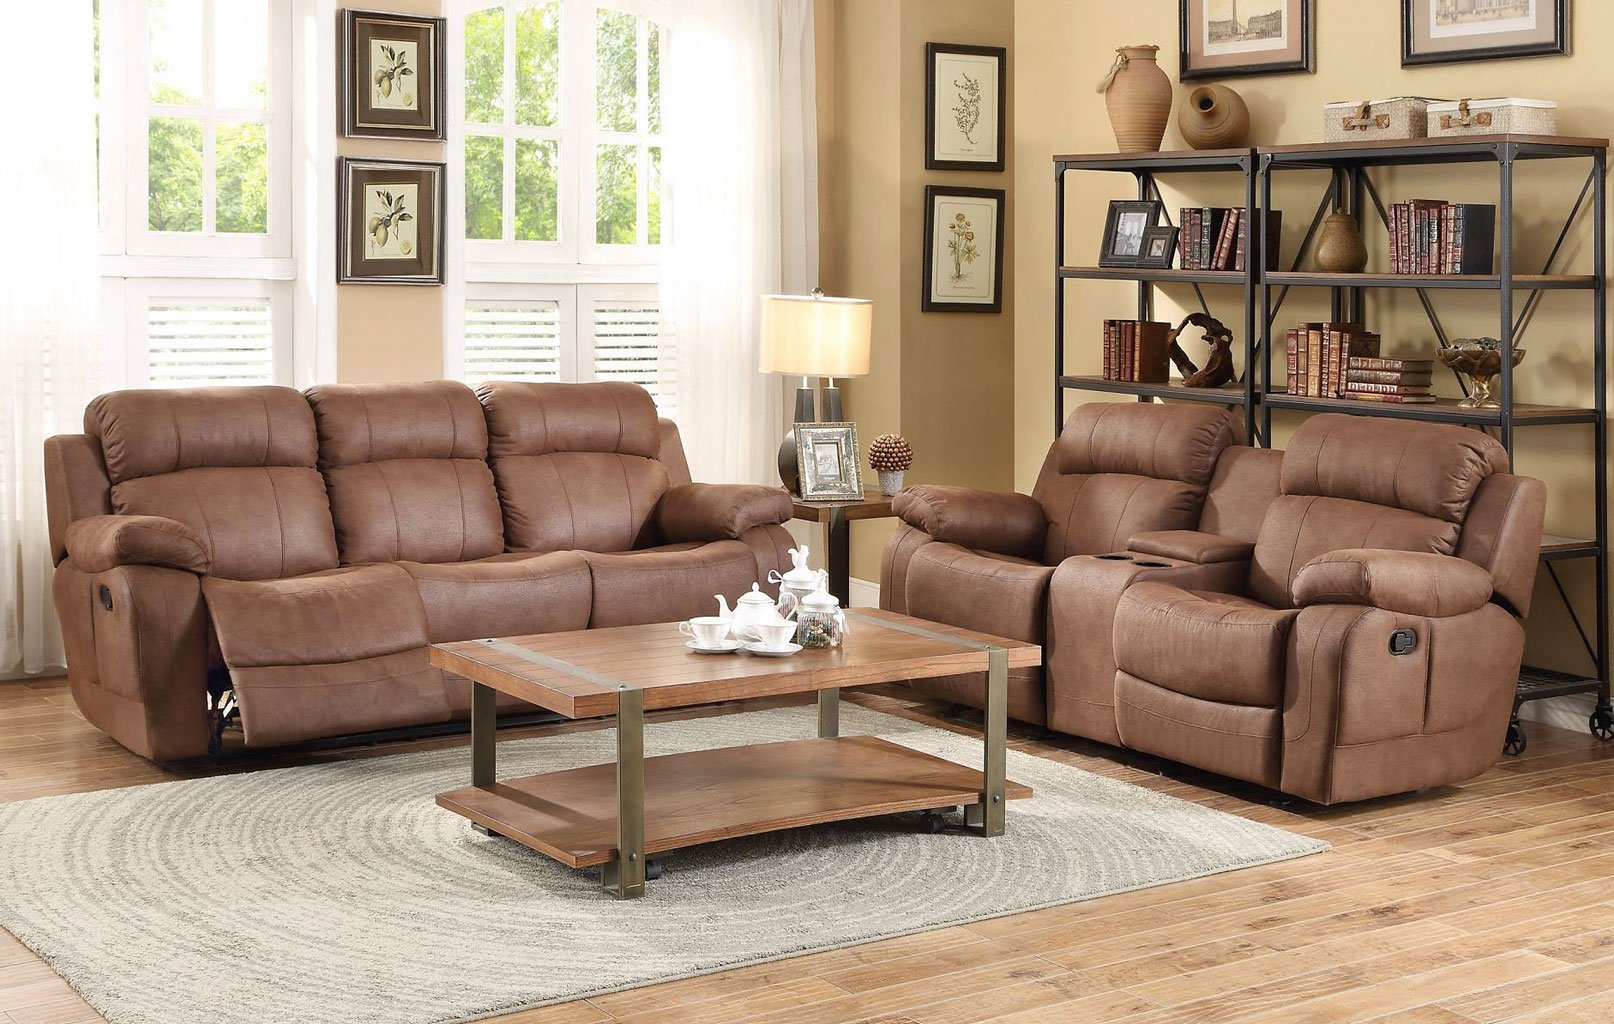 Double Recliner Chair Marille Double Reclining Living Room Set Dark Brown